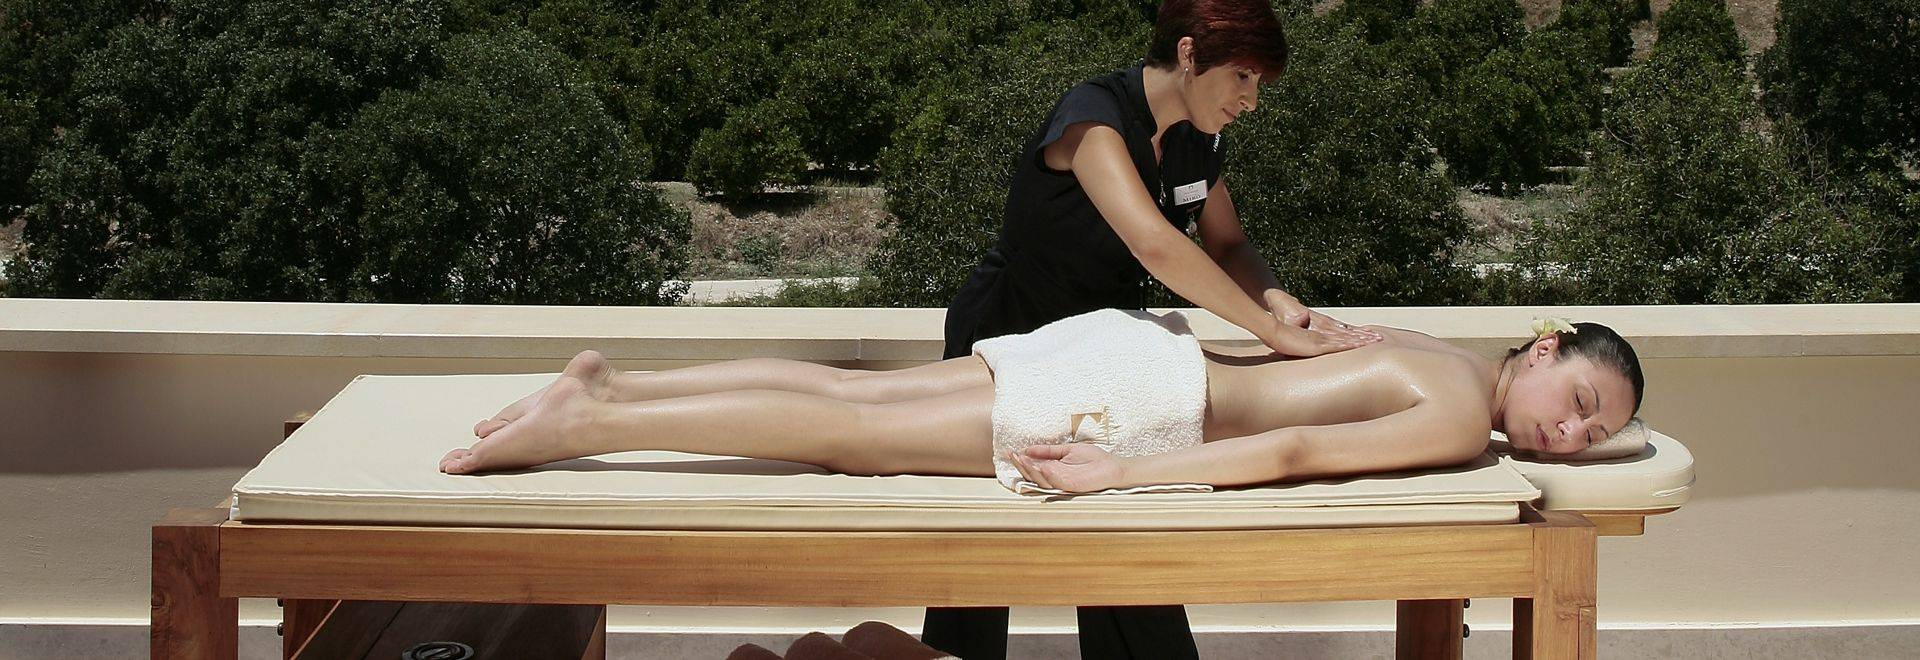 Ayii-Anargyri-outside-massage.JPG